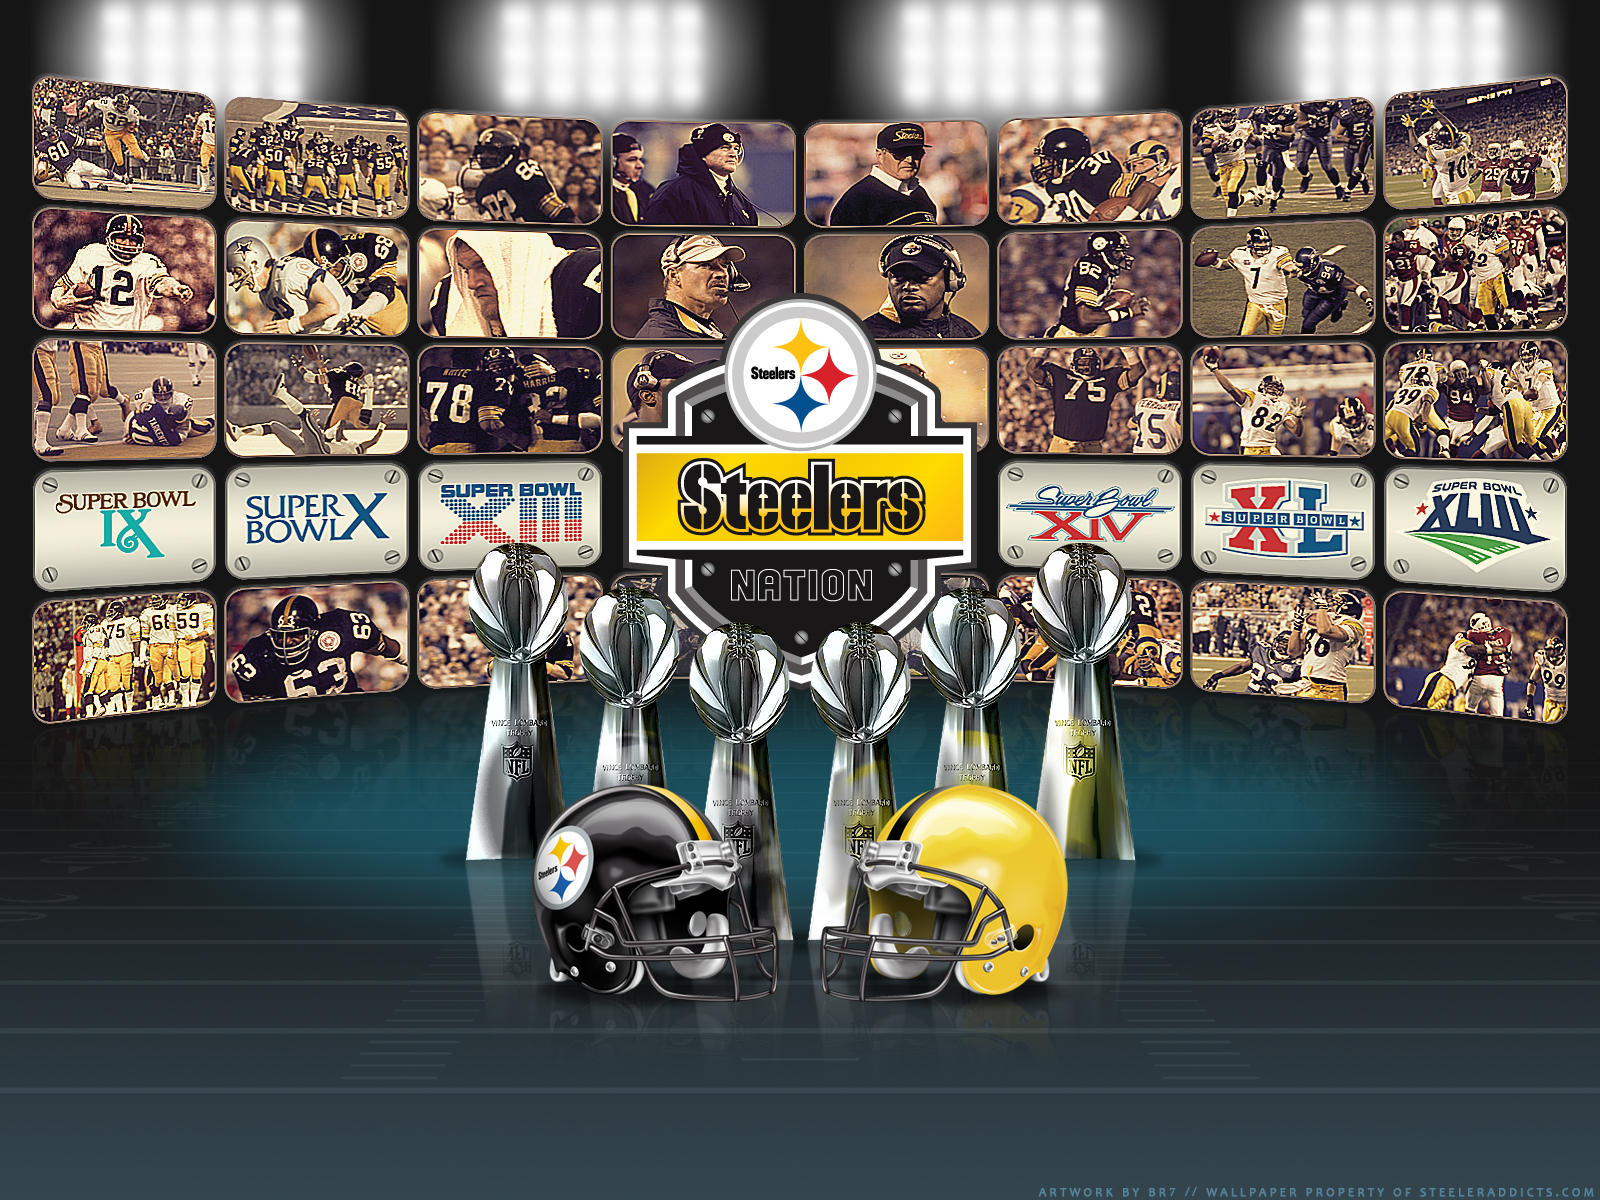 Pittsburgh Steelers Wallpaper 69 Download Screensavers 1600x1200